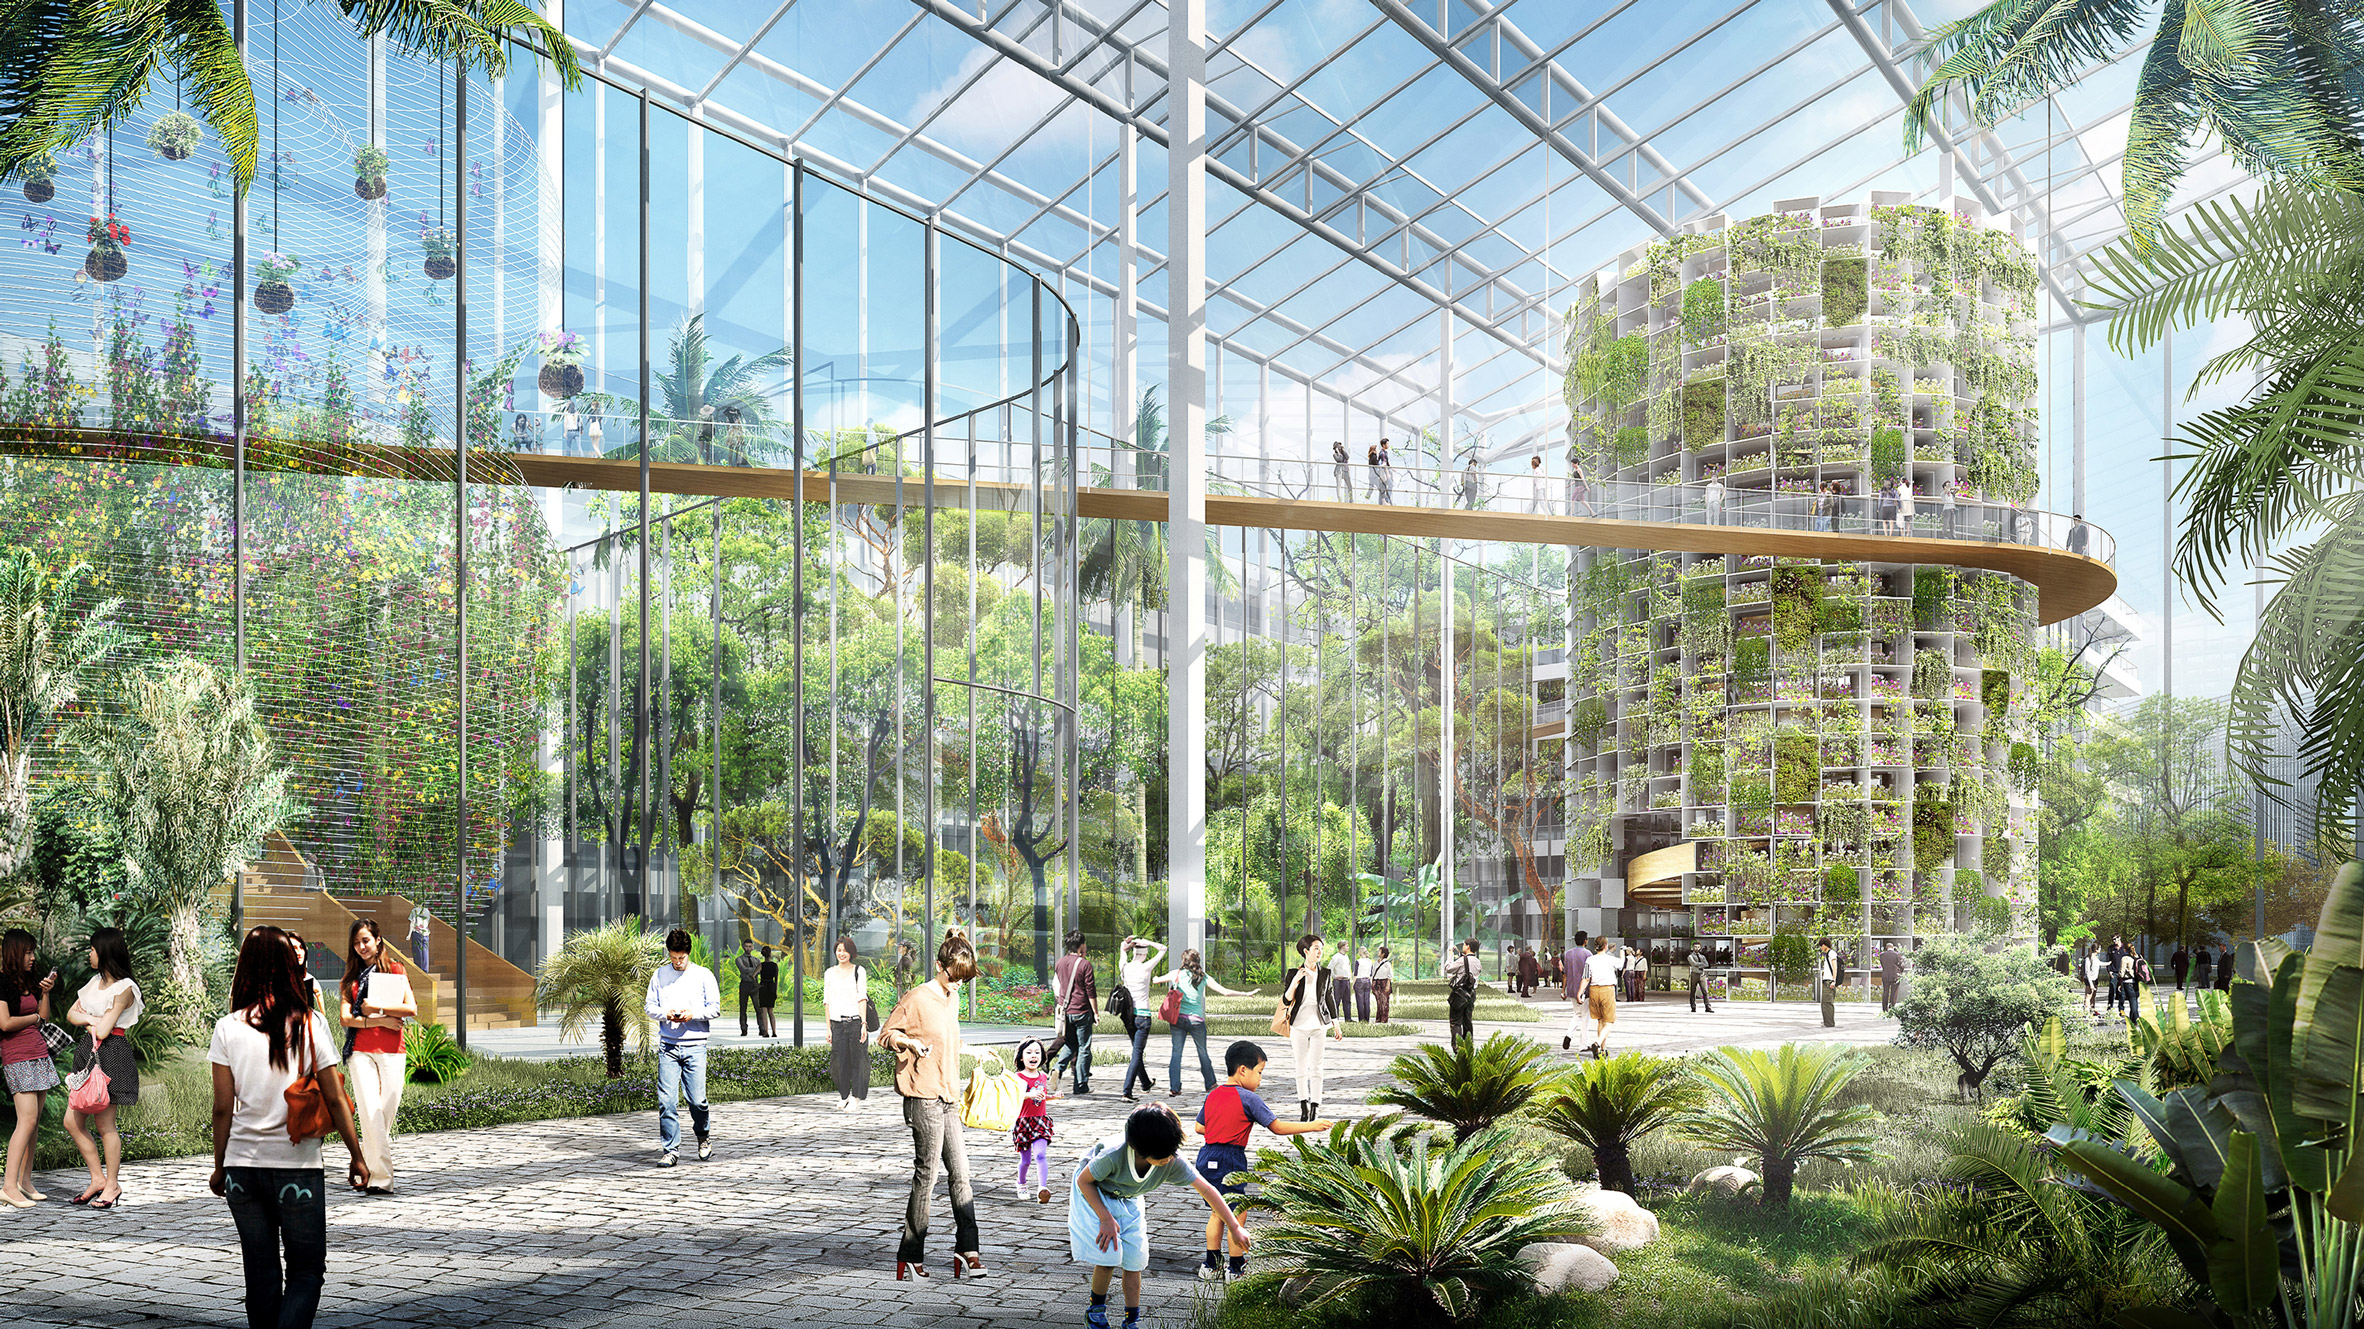 Sasaki designs hydroponic vertical farm for Shanghai